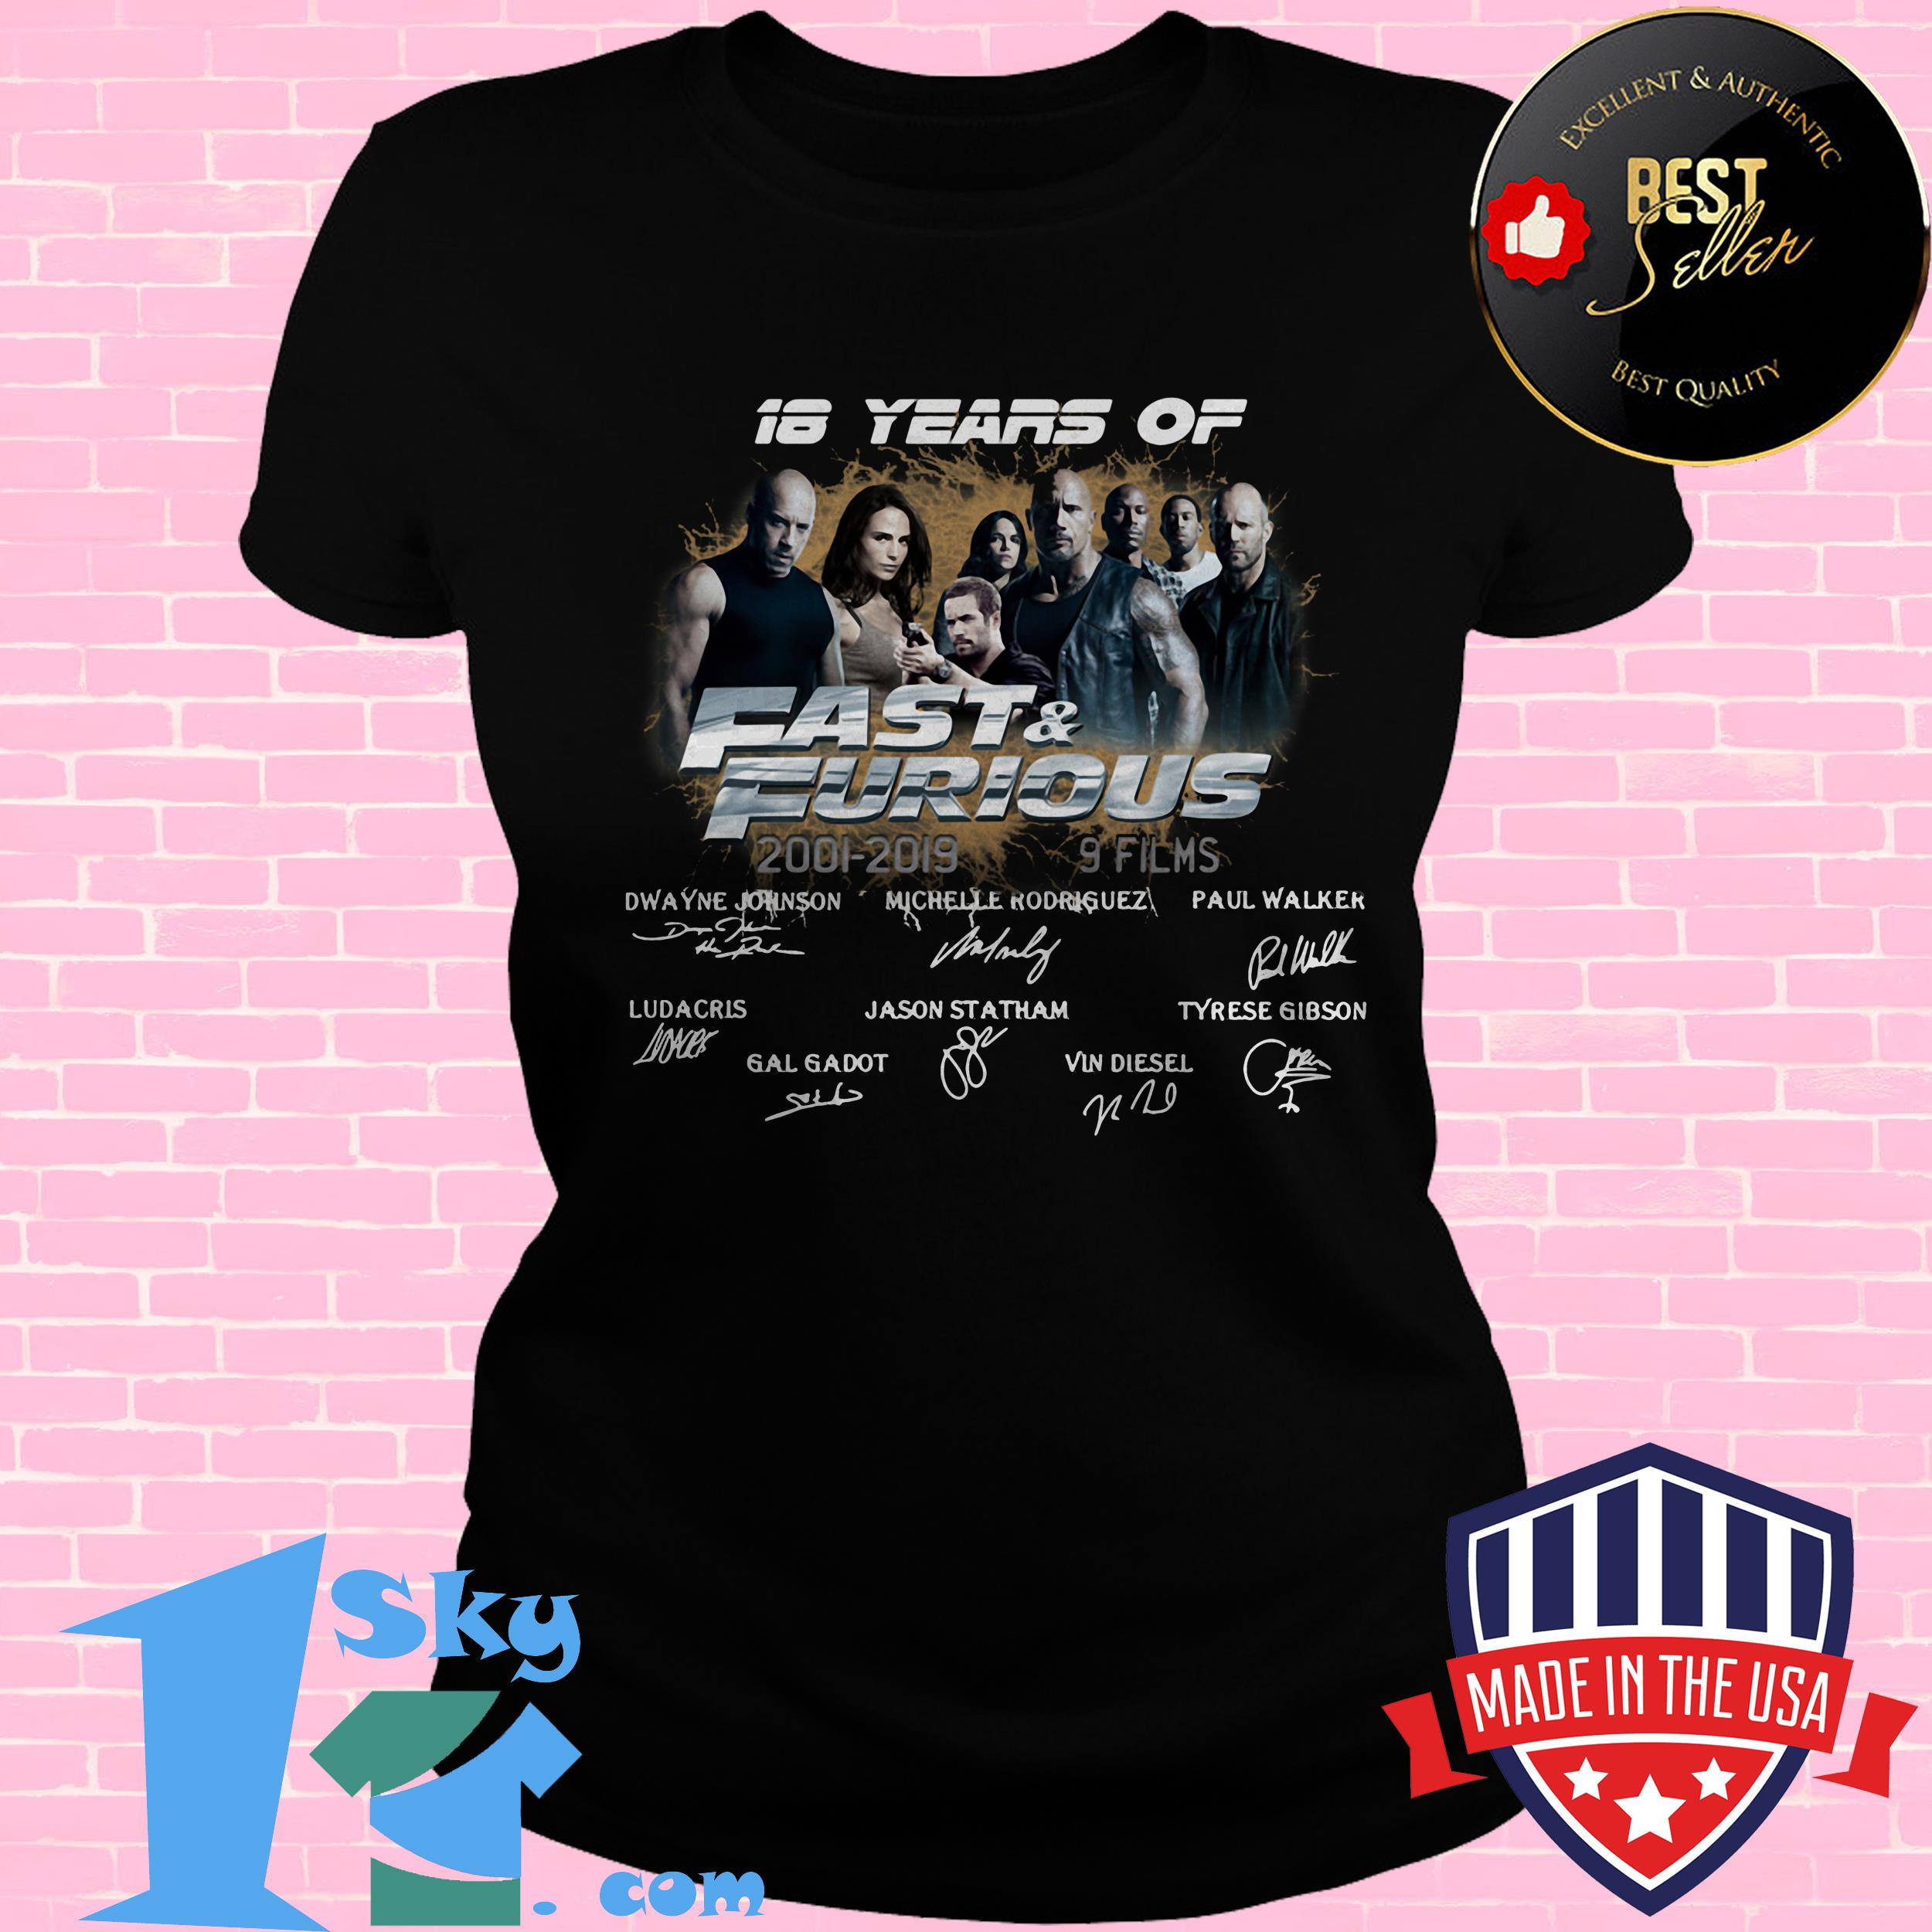 18 years of fast furious 2001 2019 8 films signature ladies tee - 18 Years Of Fast & Furious 2001-2019 8 Films Signature shirt